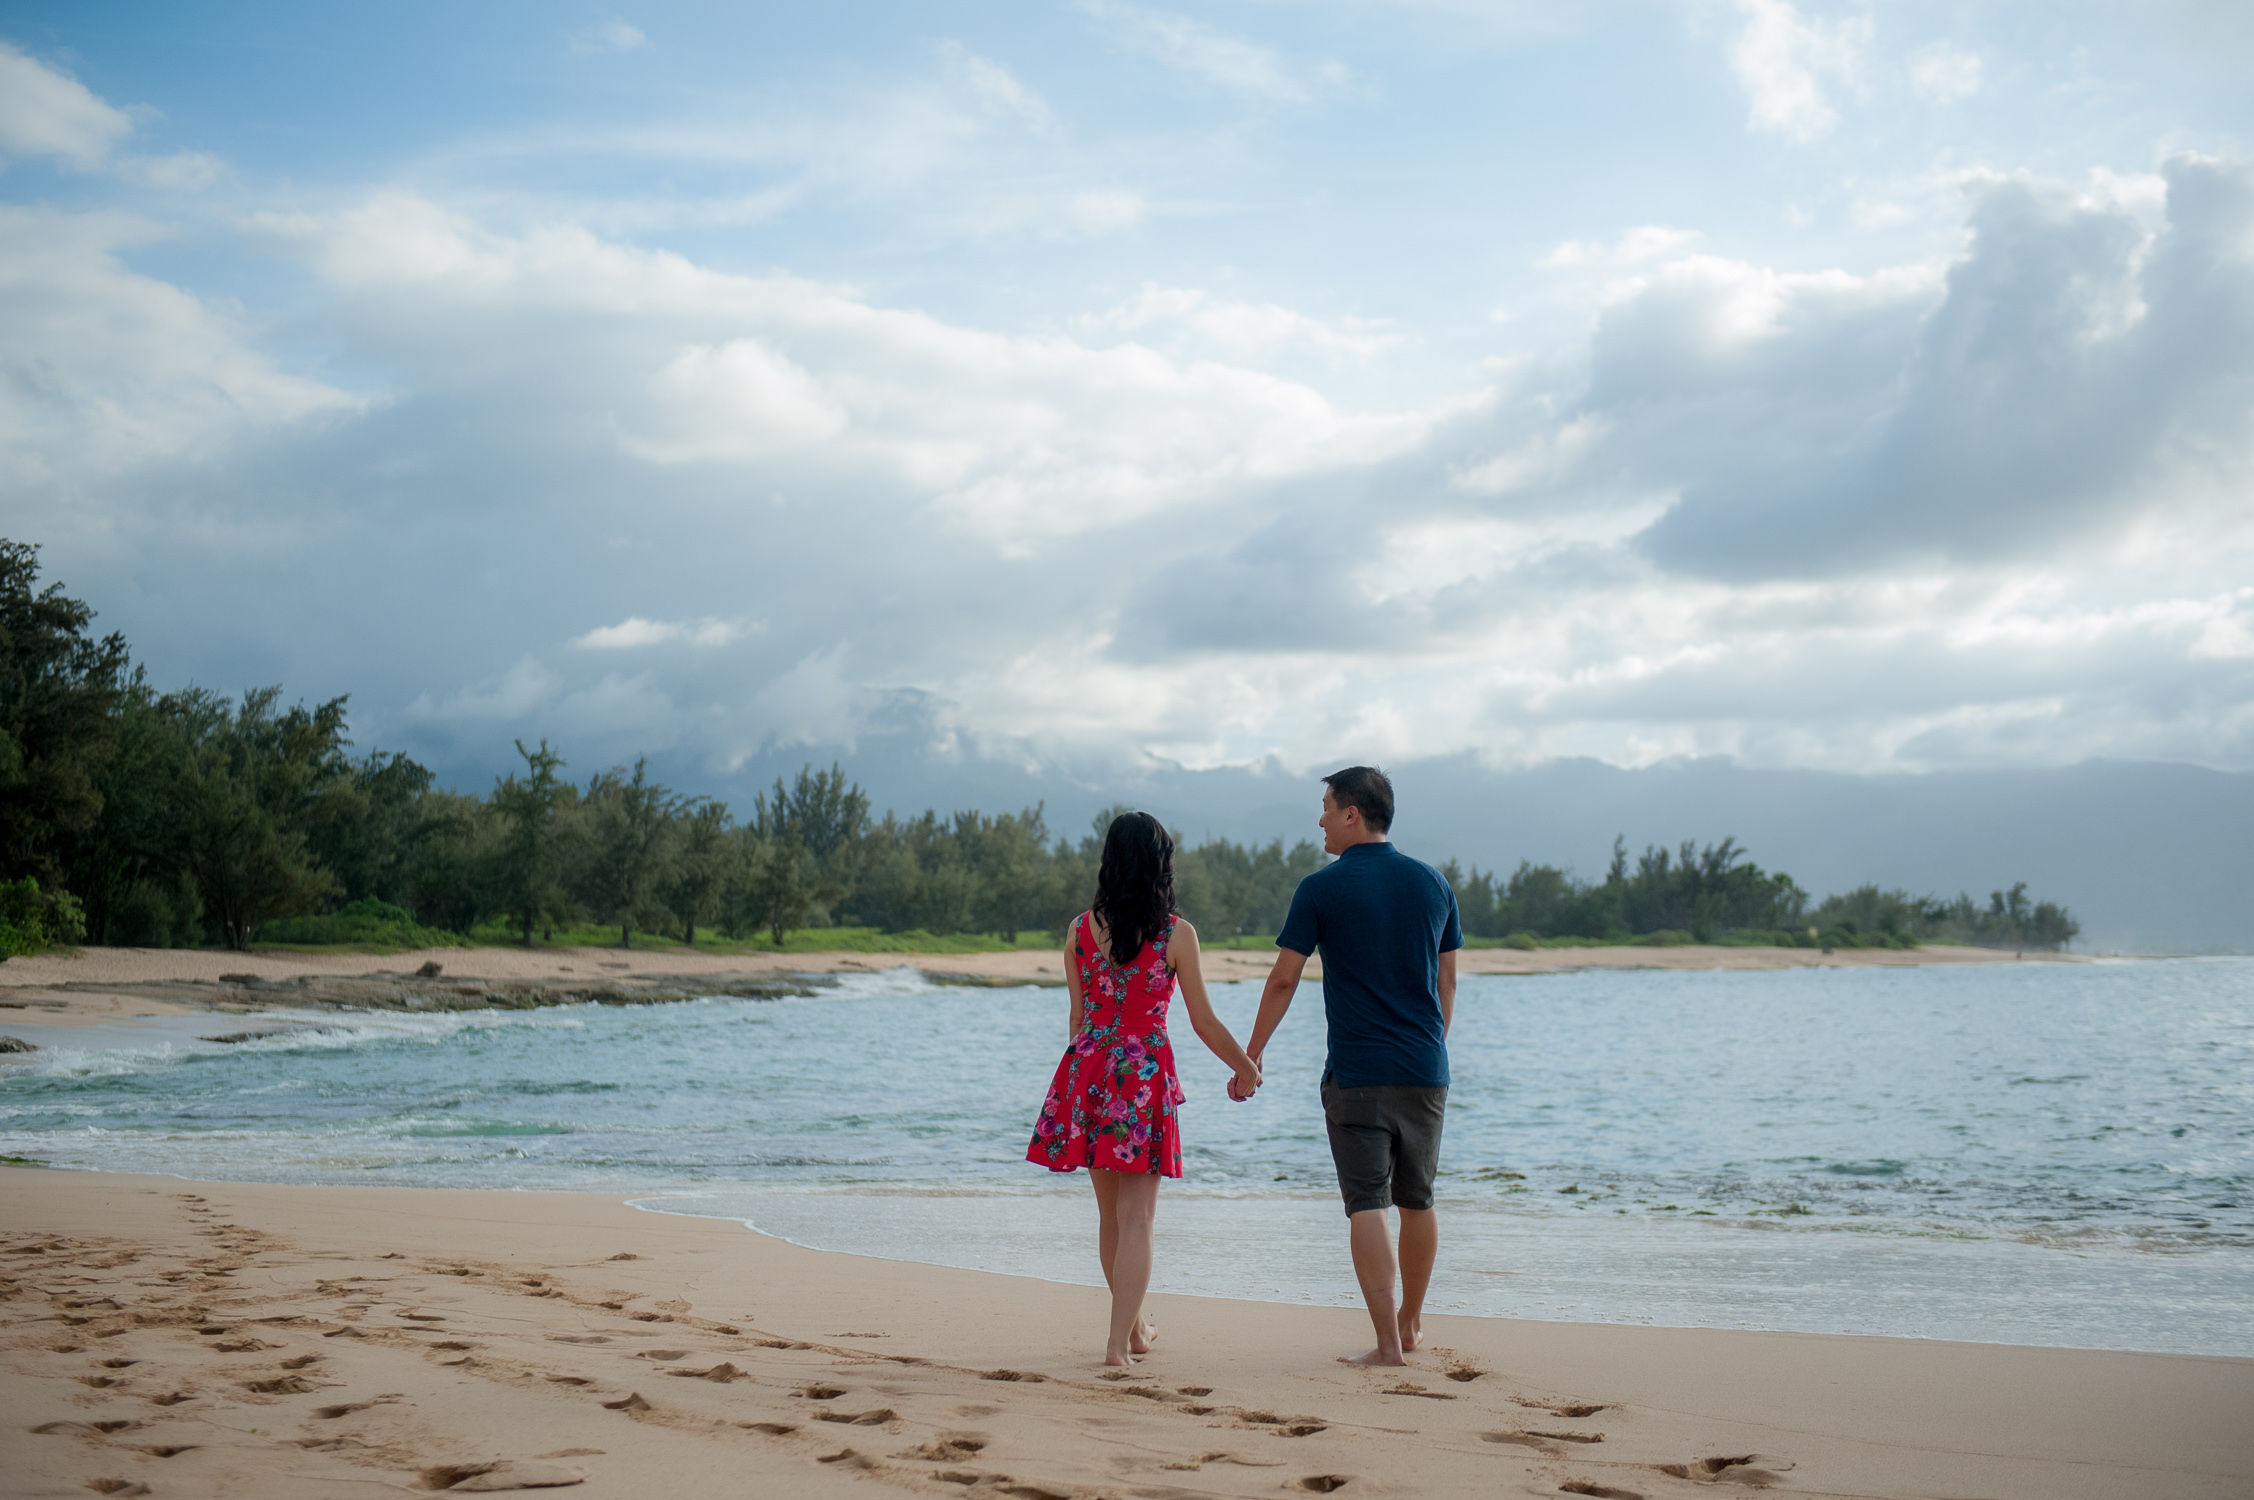 Walking down a North Shore beach, hand in hand